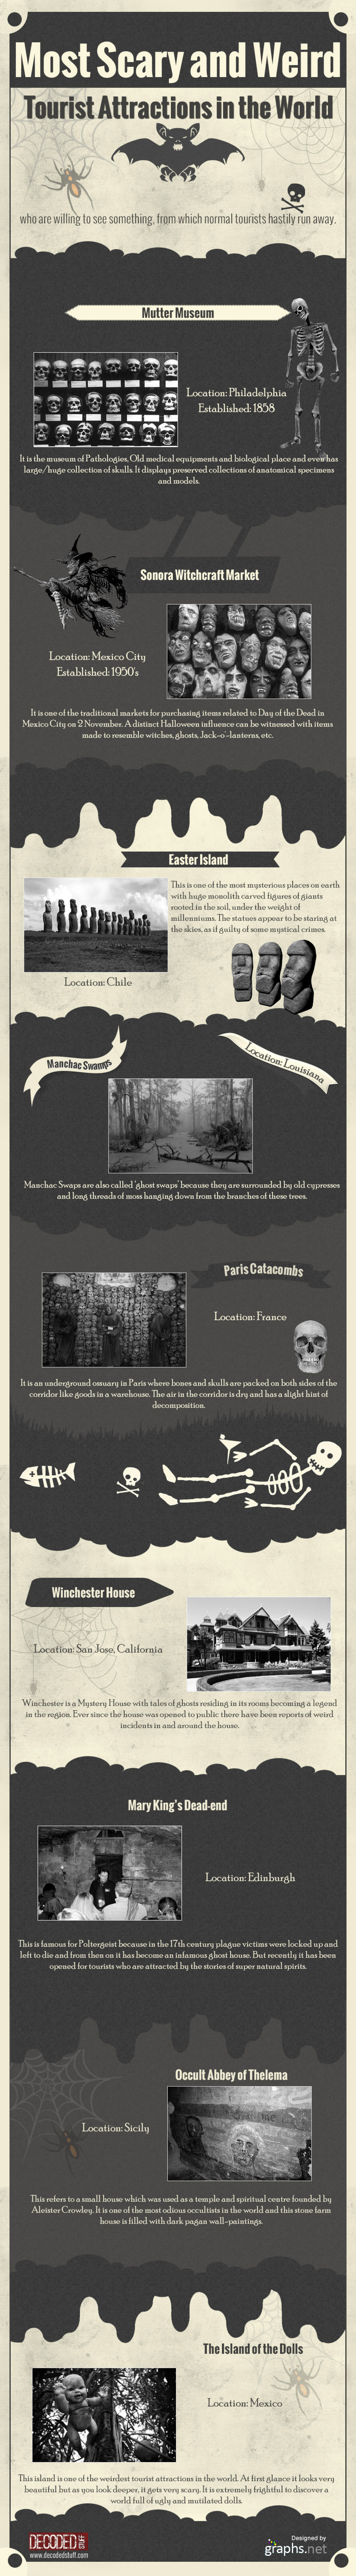 Most scary and weird tourist attractions in the world Infographic